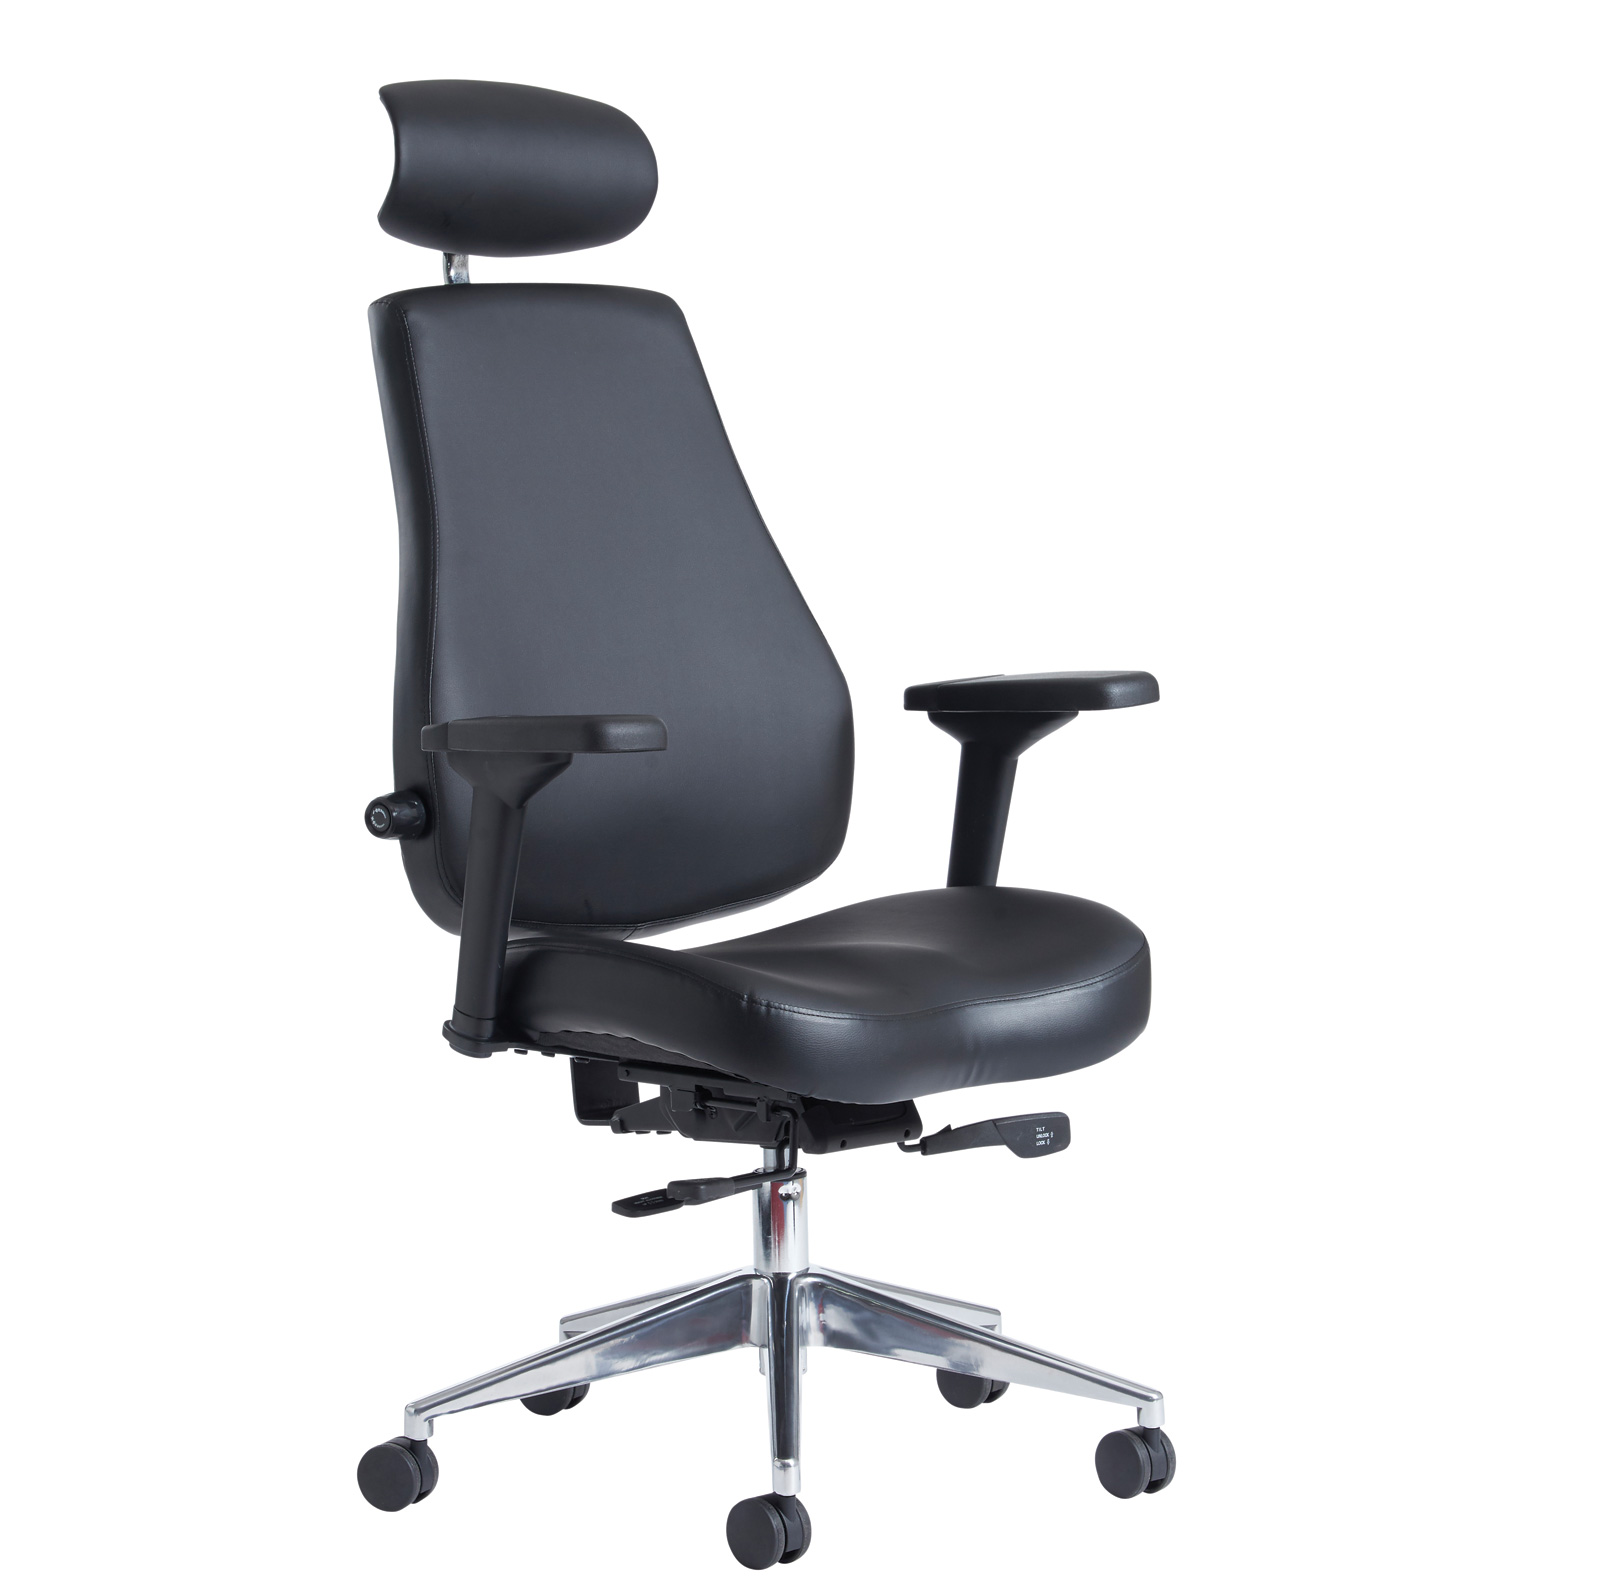 Franklin 24 hour task chair - black